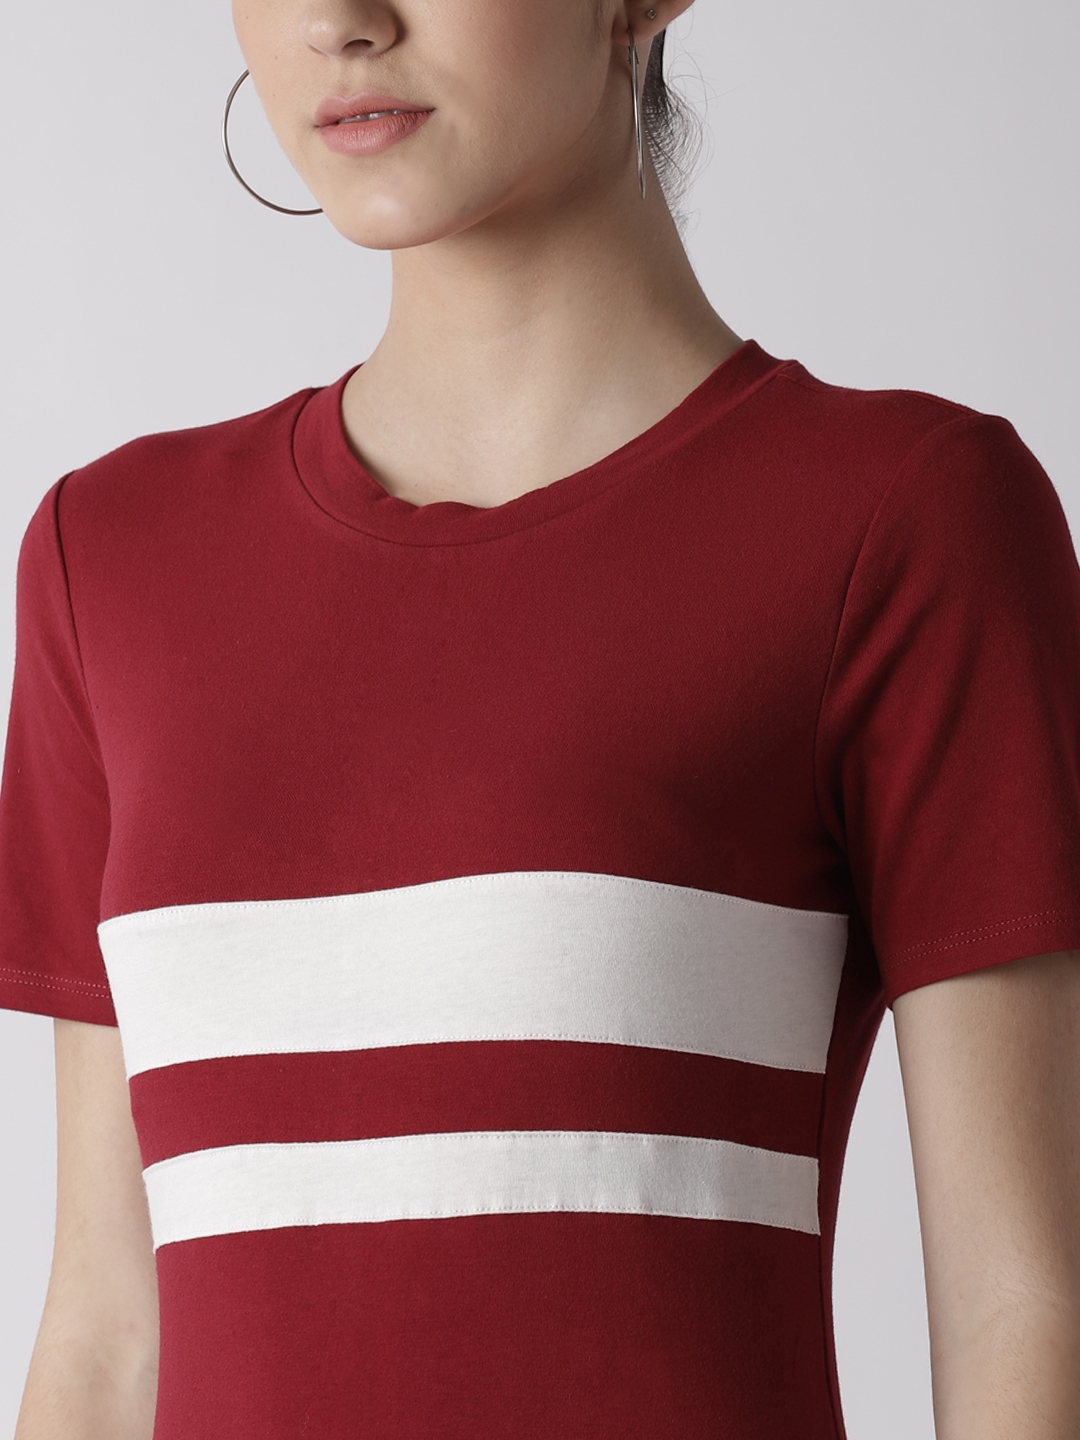 maroon and white striped t shirt dress